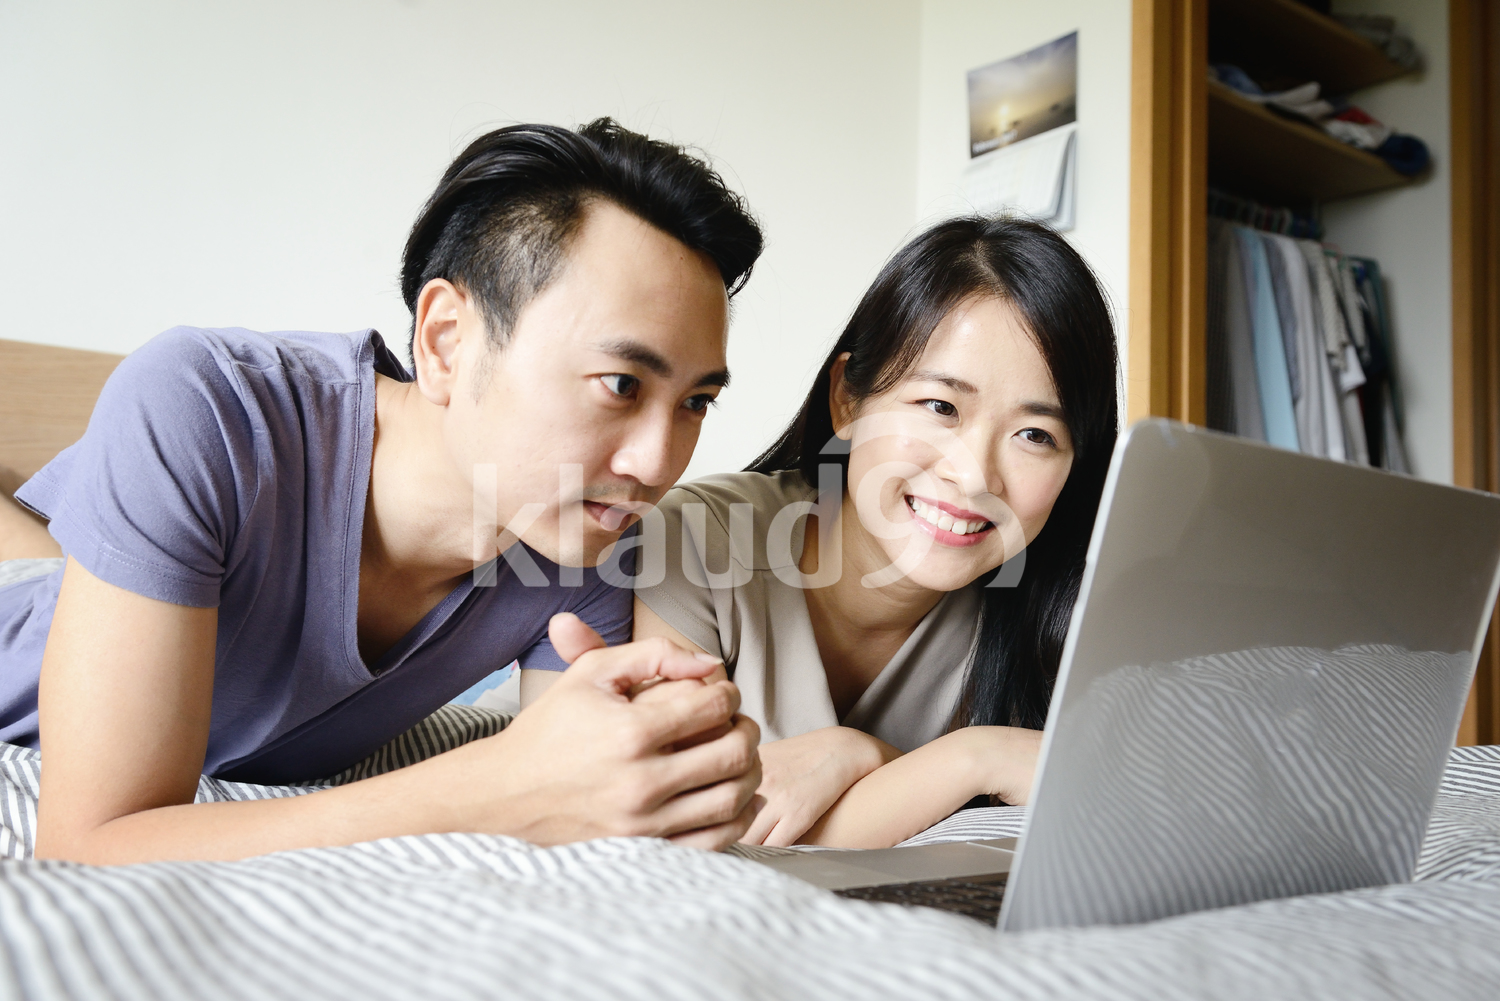 husband and wife in bed together on a laptop